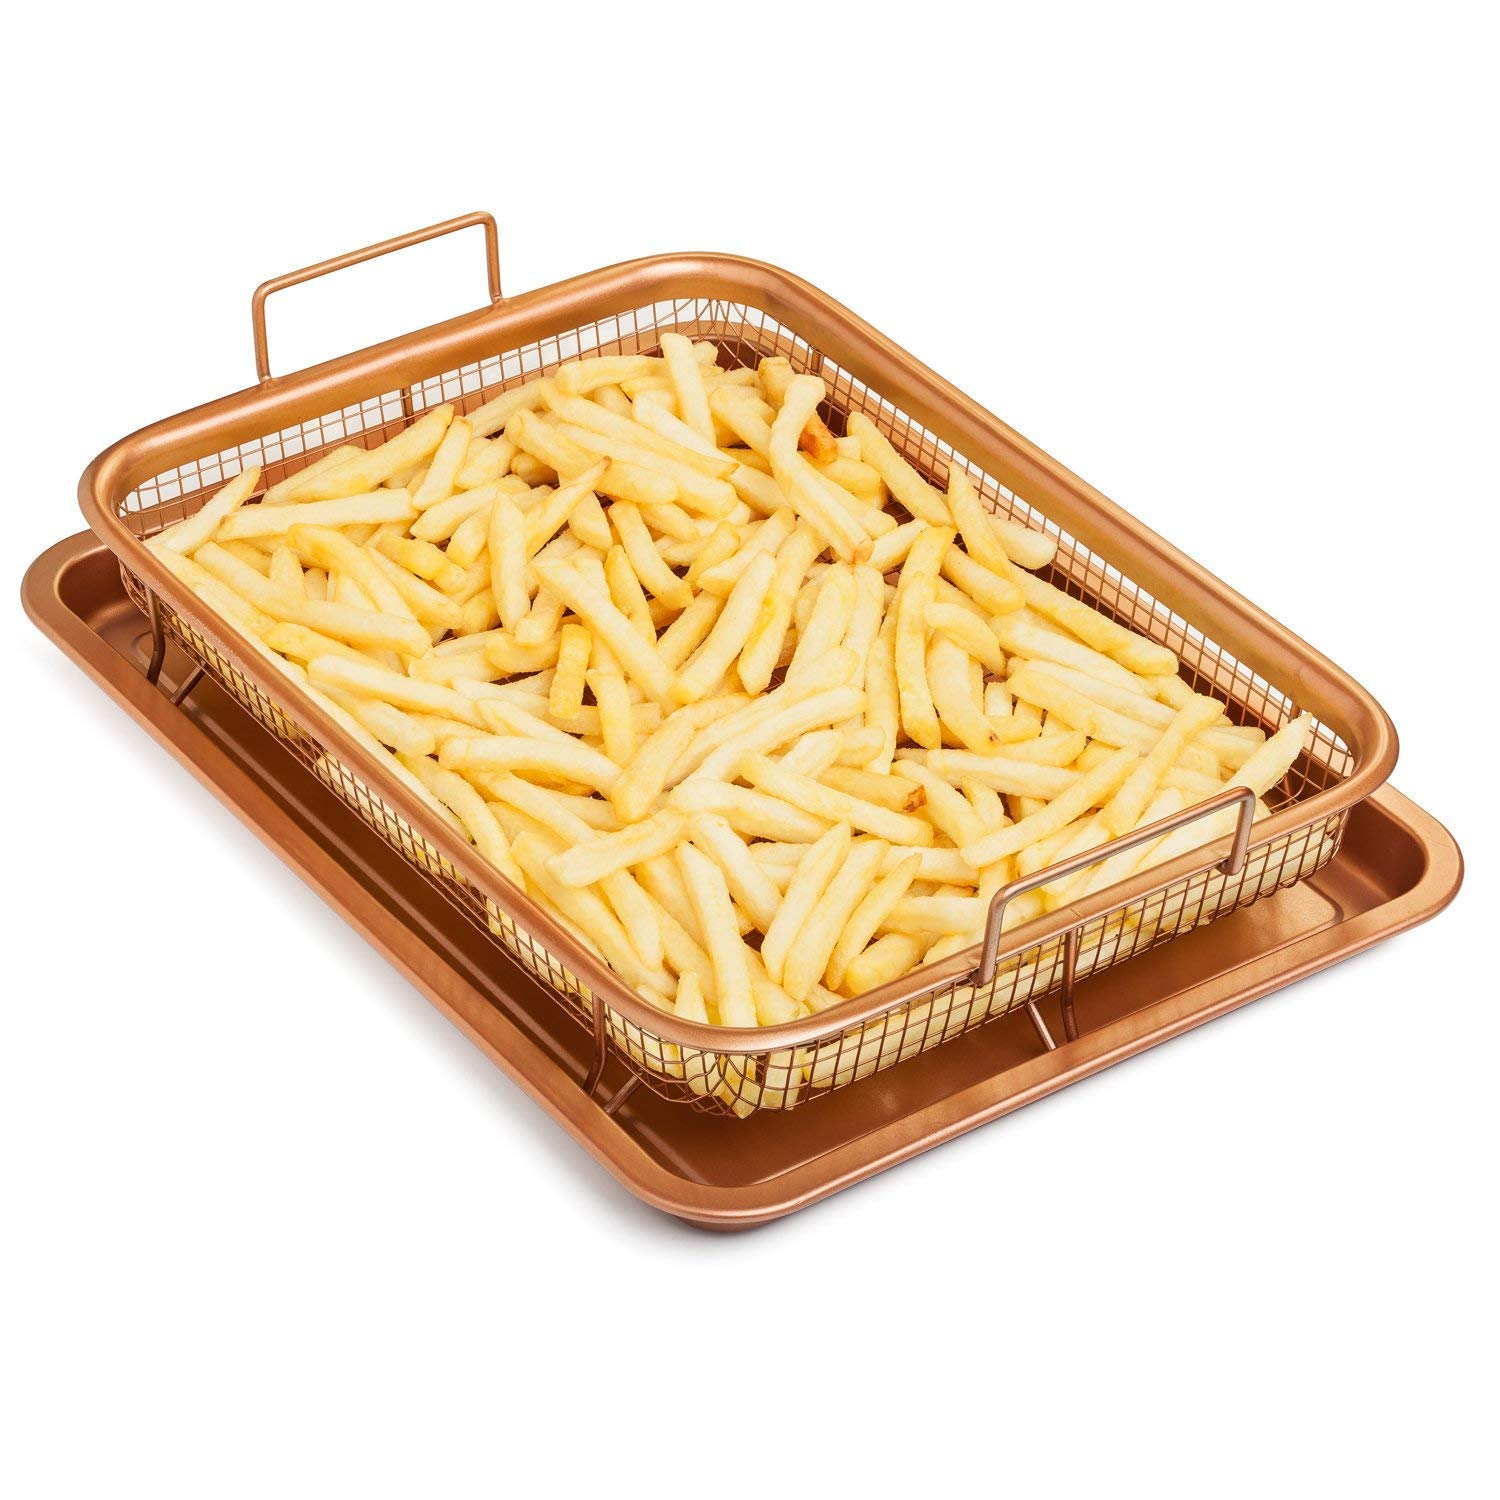 Copper Crisper Tray, BESTHINKY 2-Pieces Nonstick Oven Air Fryer Pan/Tray & Mesh Basket Set For Chicken, French Fries, Onion Rings (A)